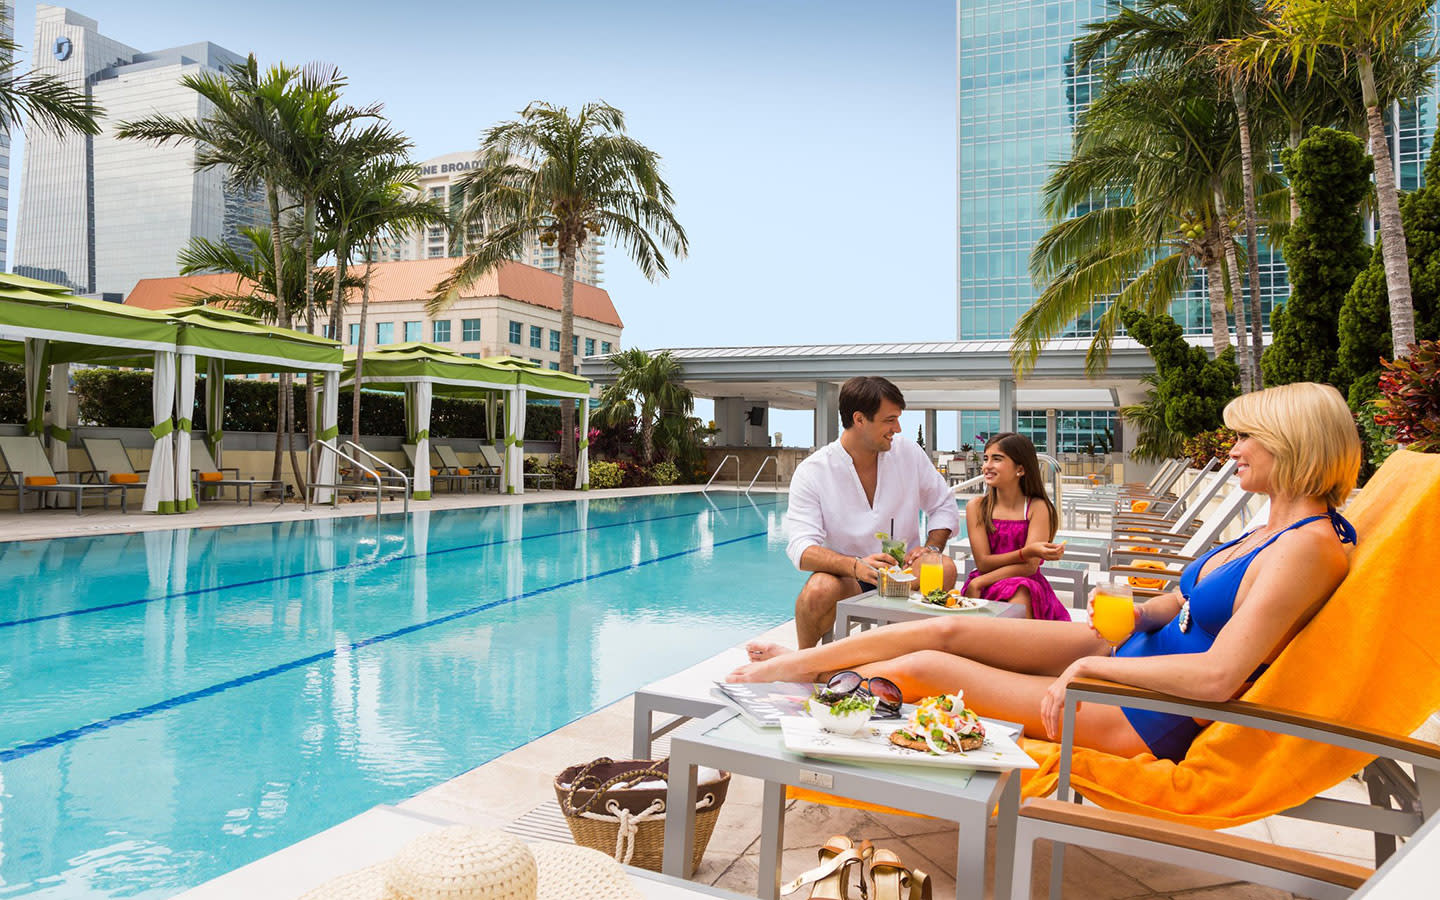 Relax in Conrad Miami's Rooftop Pool